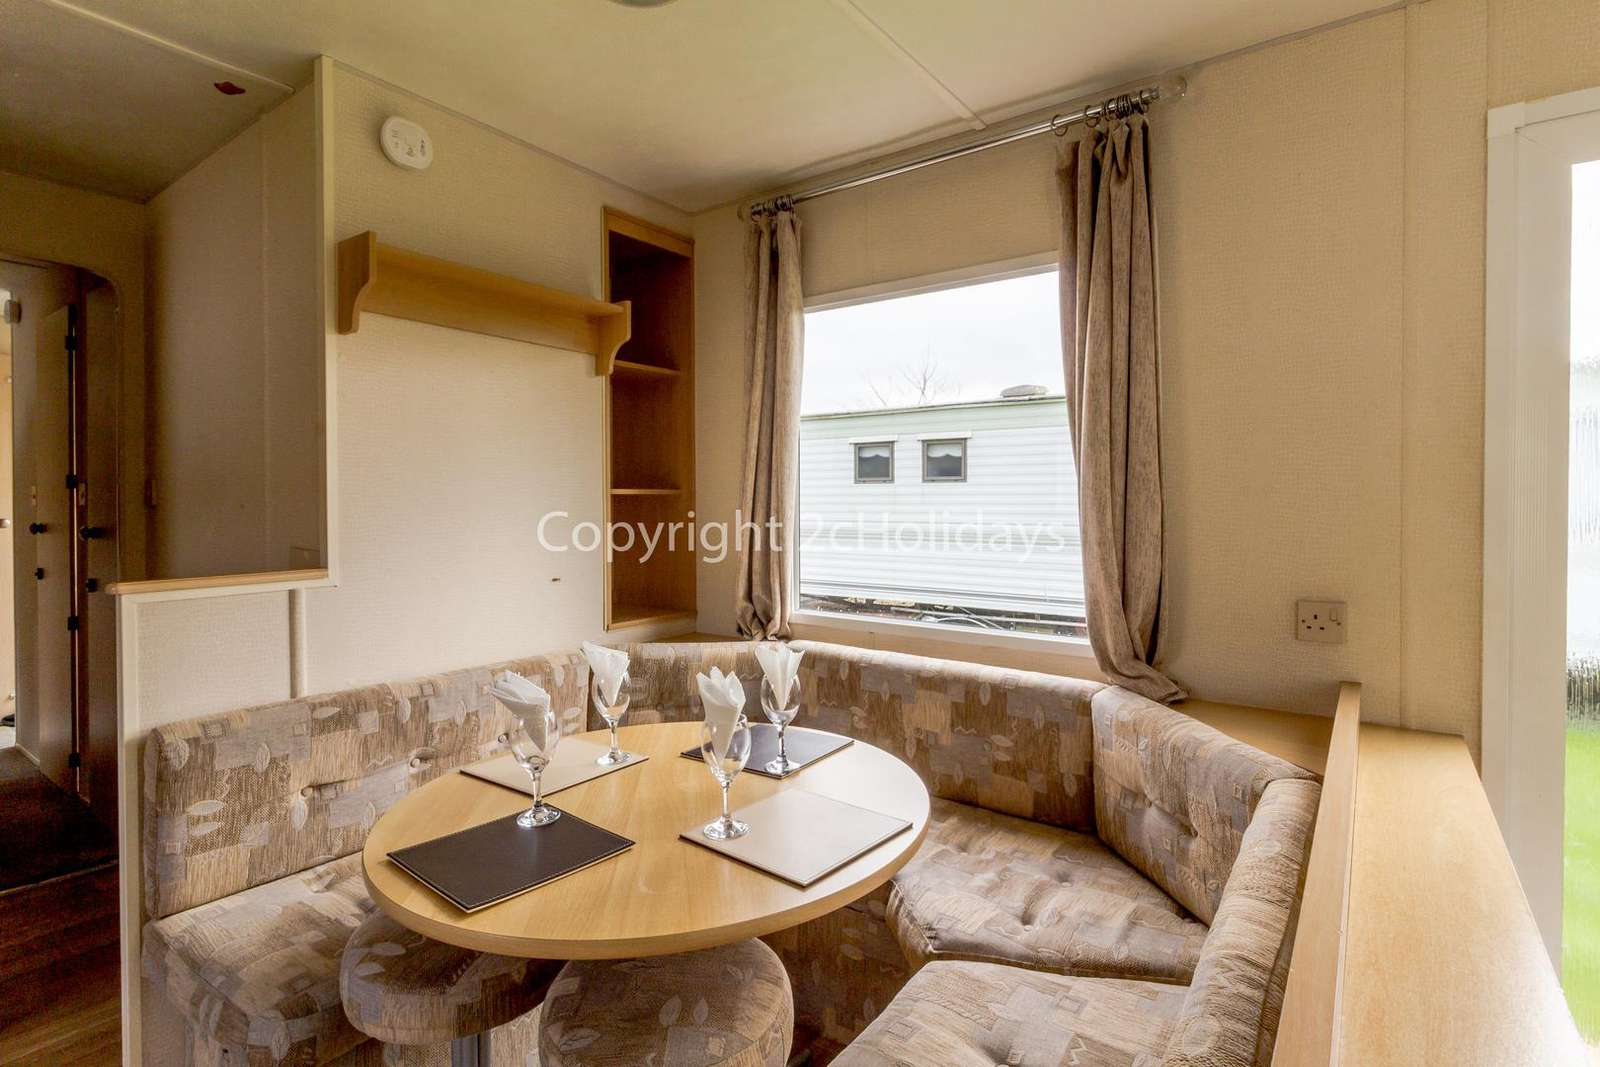 Perfect place to dine in this self-catering accommodation